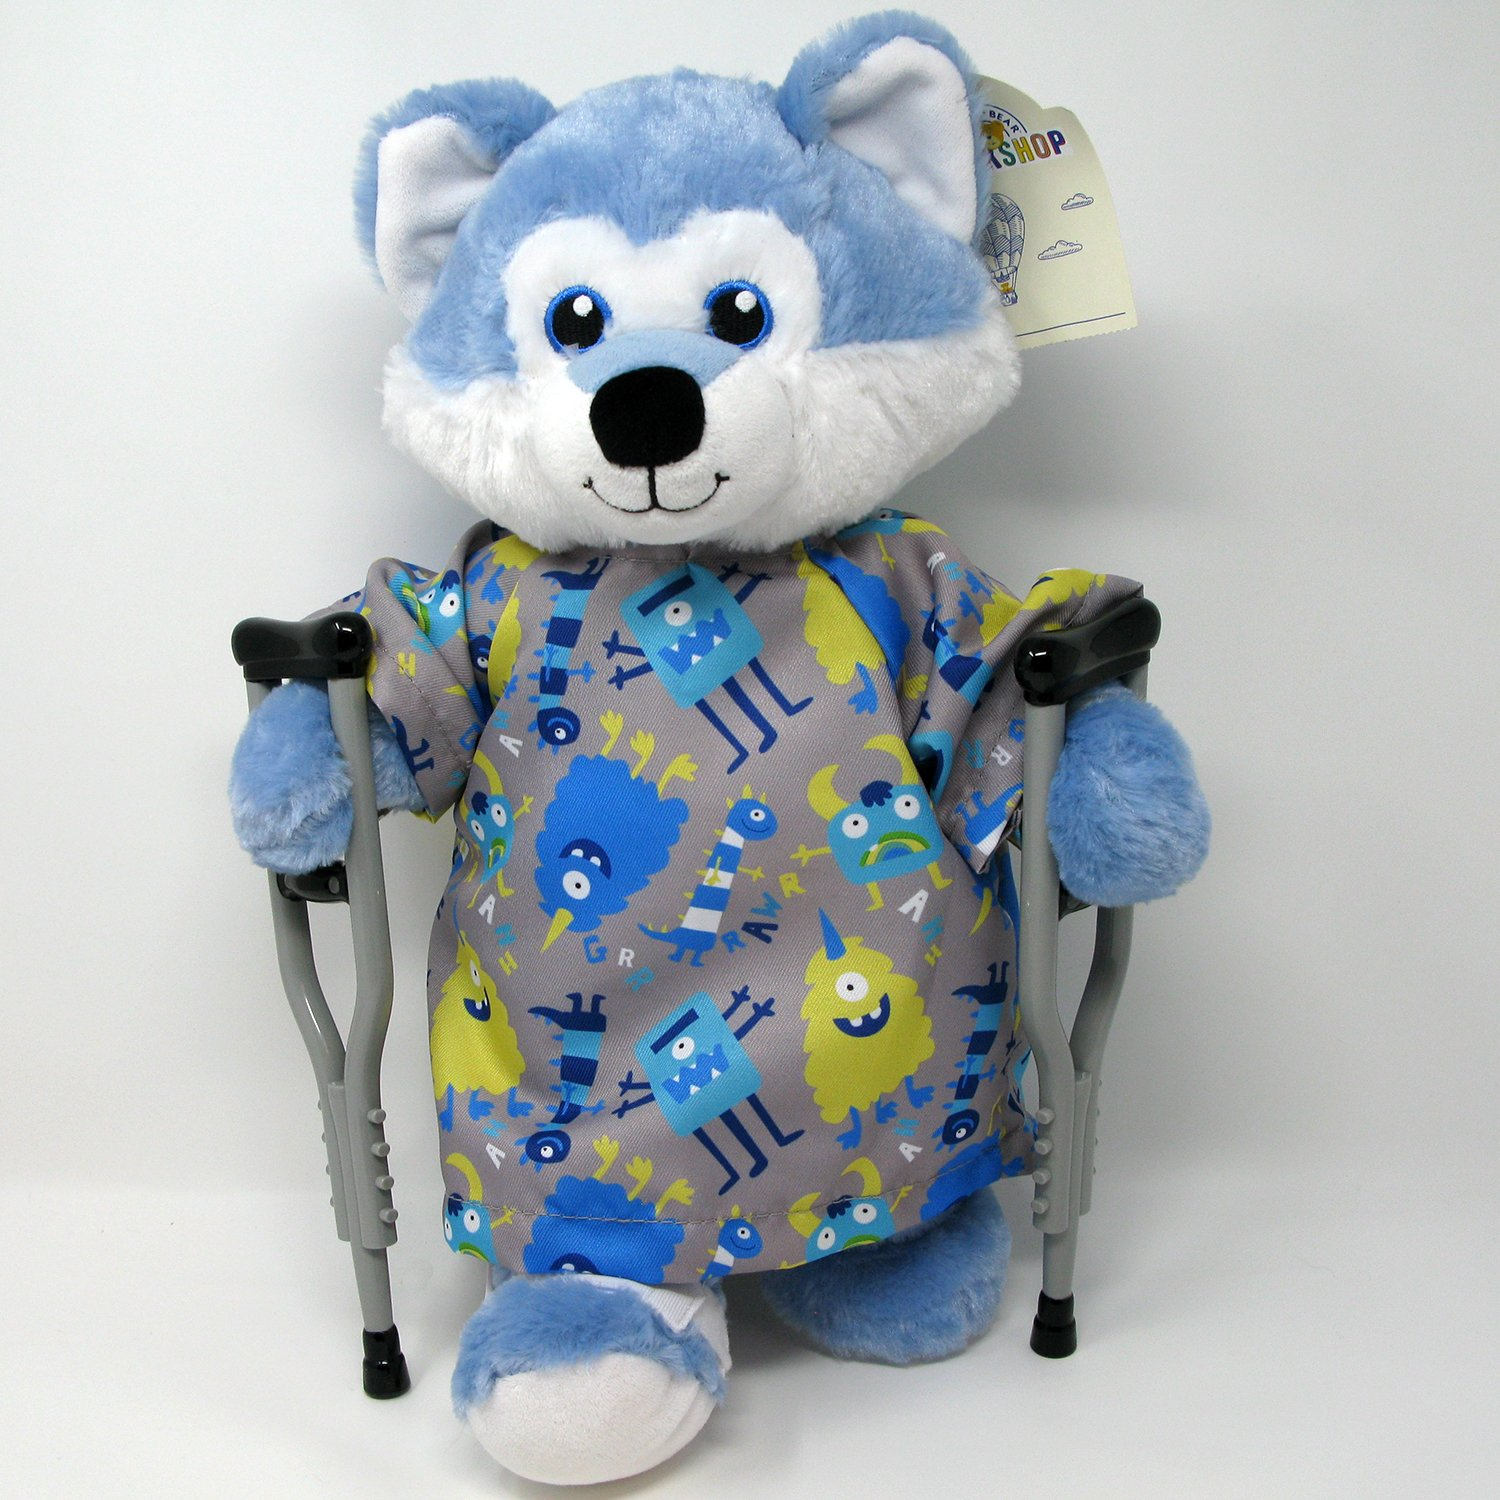 Blue Husky Puppy Dog Get Well Patient in Hospital Gown Crutch Set and Broken Leg Cast